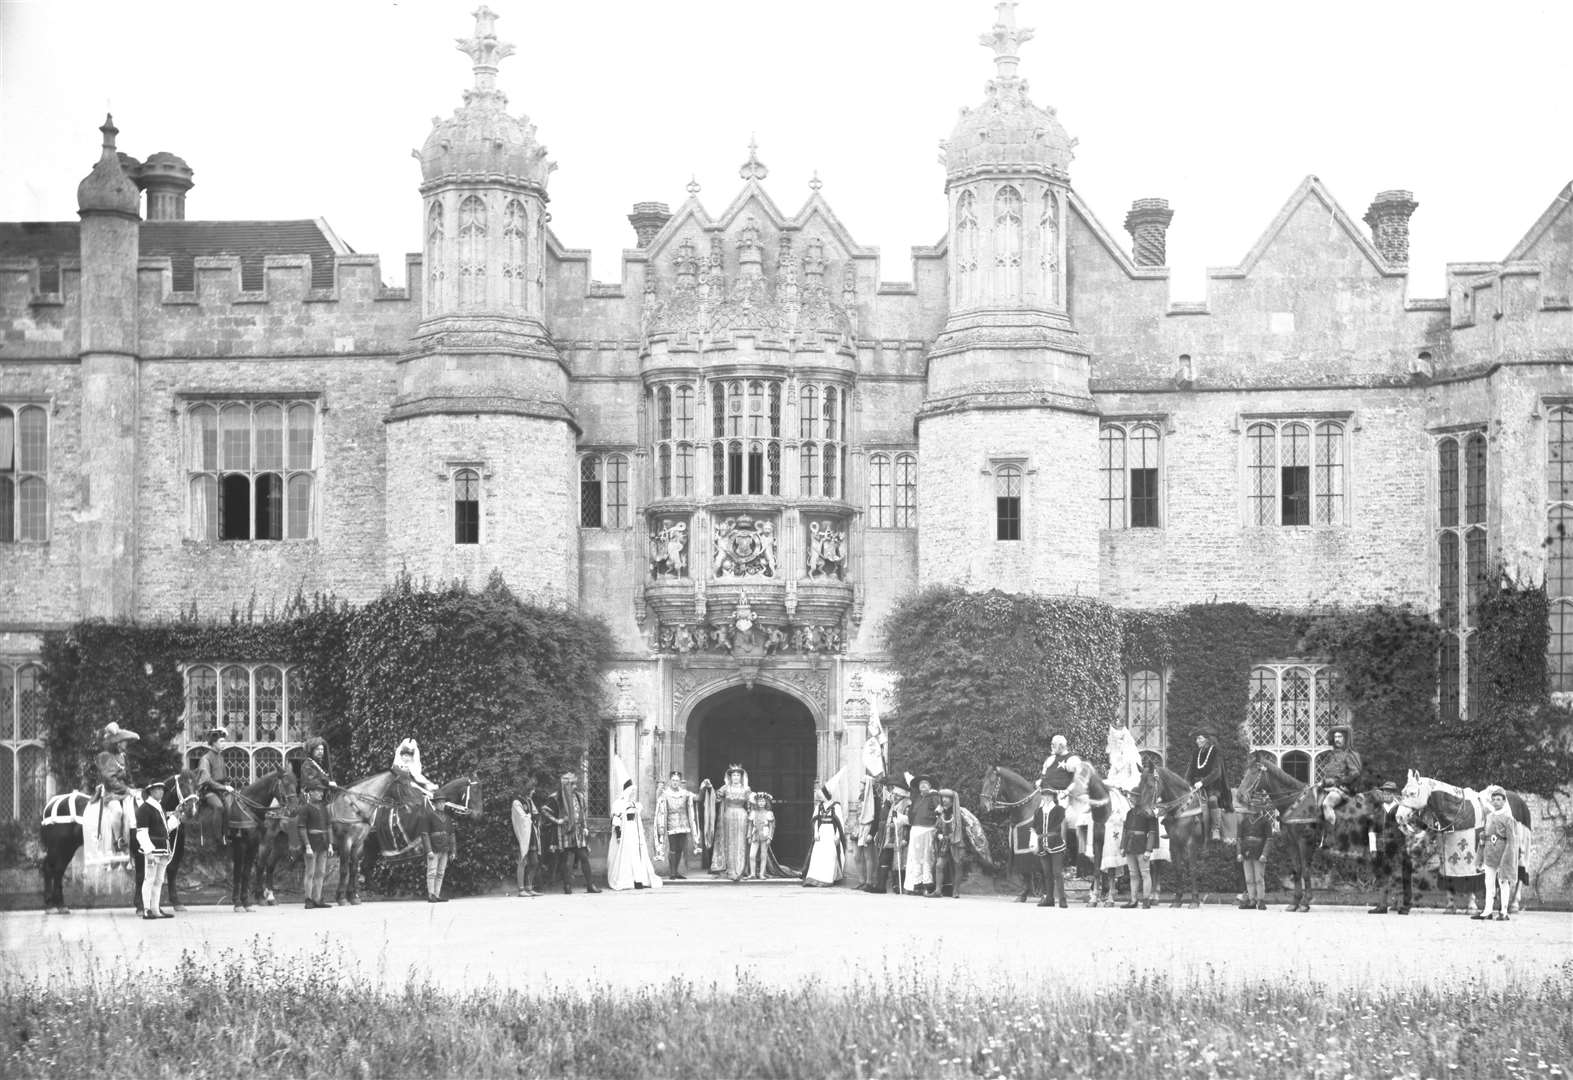 NOSTALGIA: Pageant group at Hengrave Hall, 1907